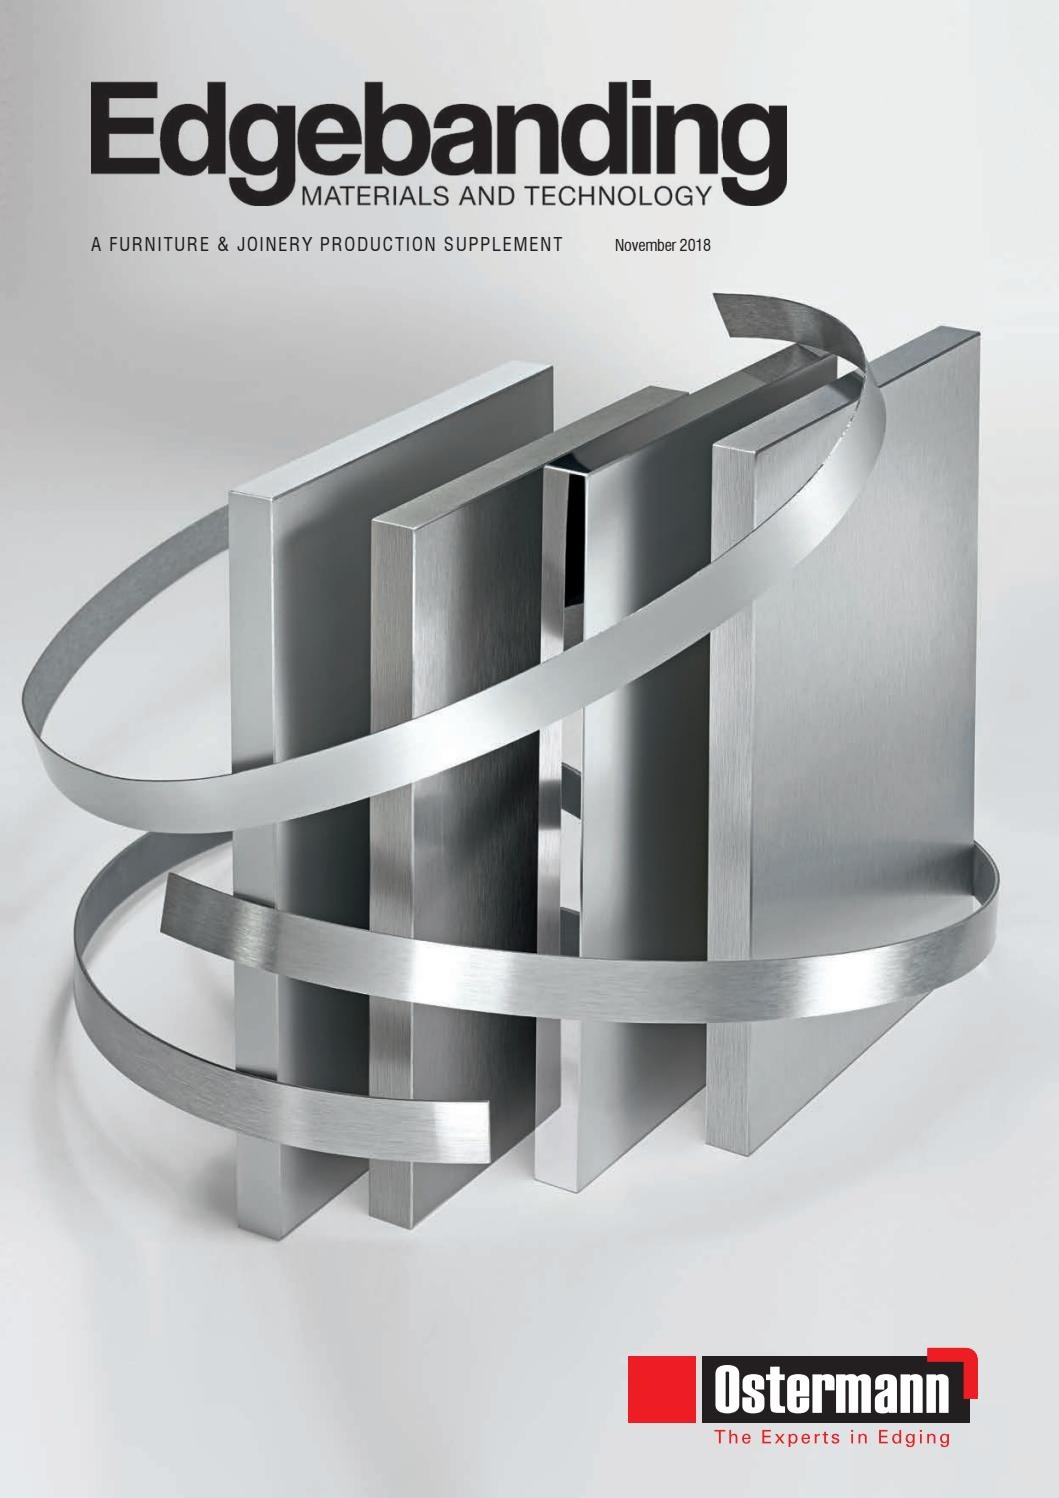 Edgebanding Materials and Technology by Gearing Media Group Ltd - issuu